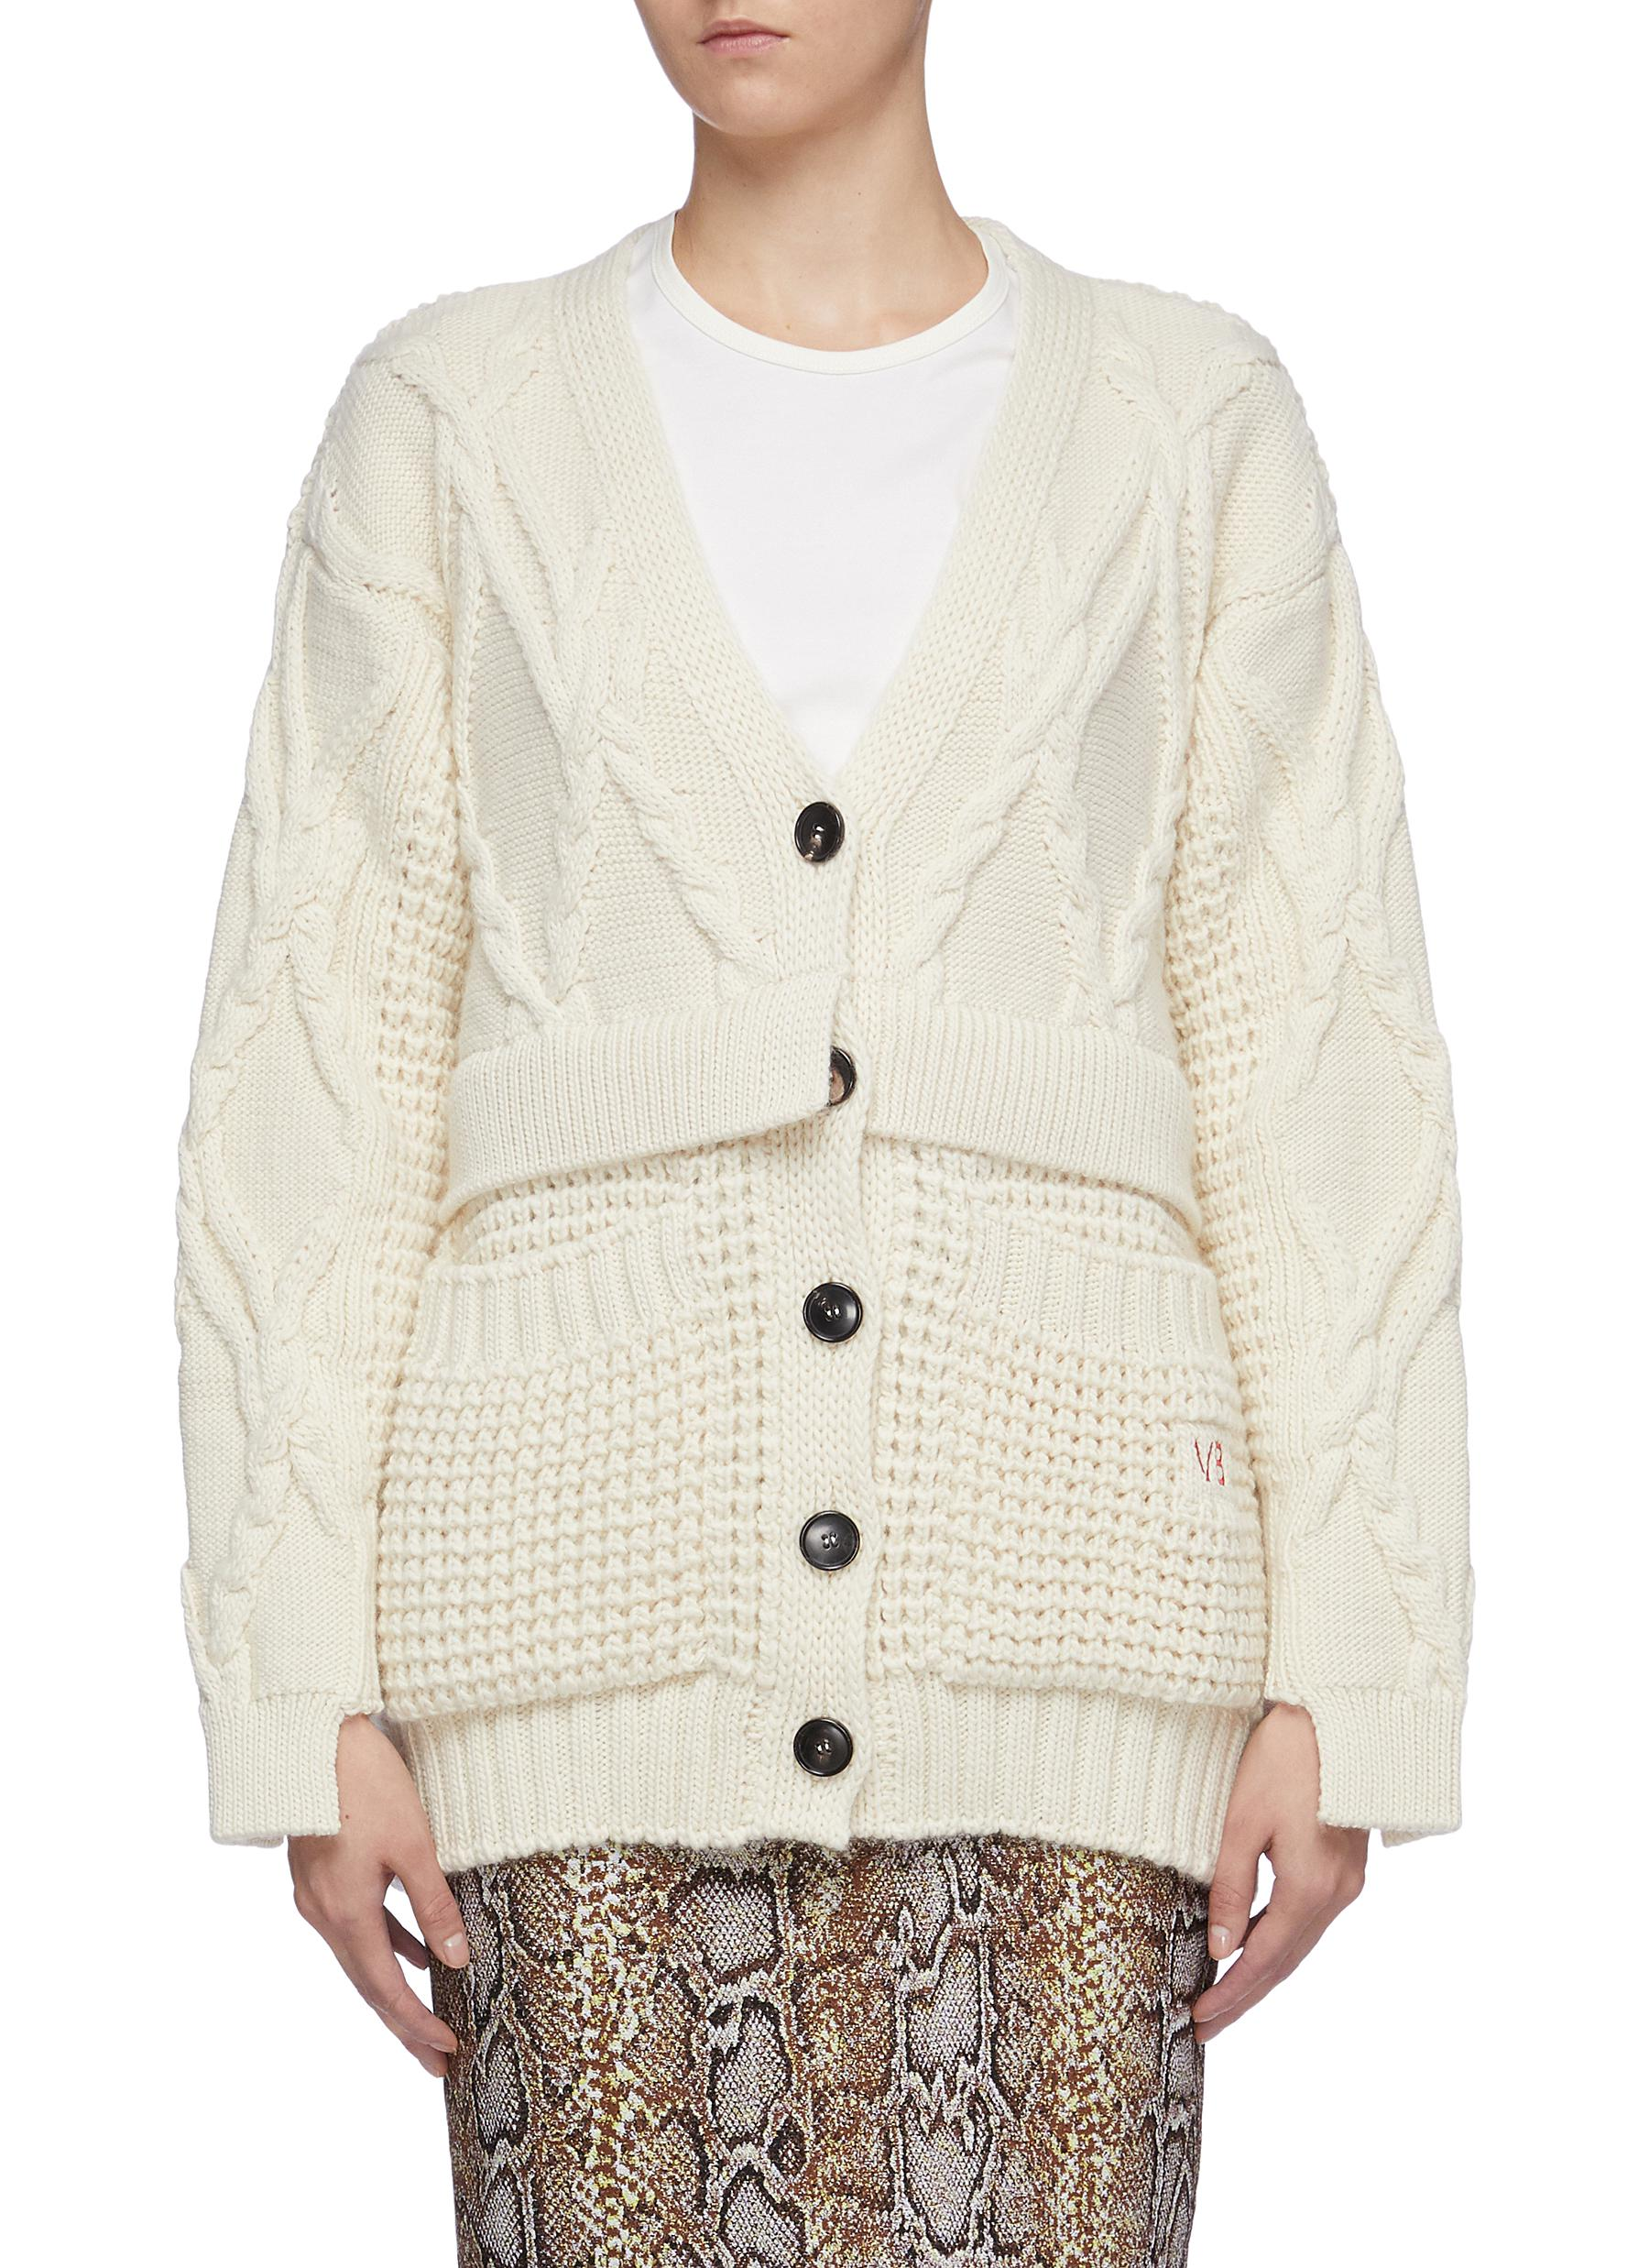 Panelled wool mix knit oversized cardigan by Victoria Beckham